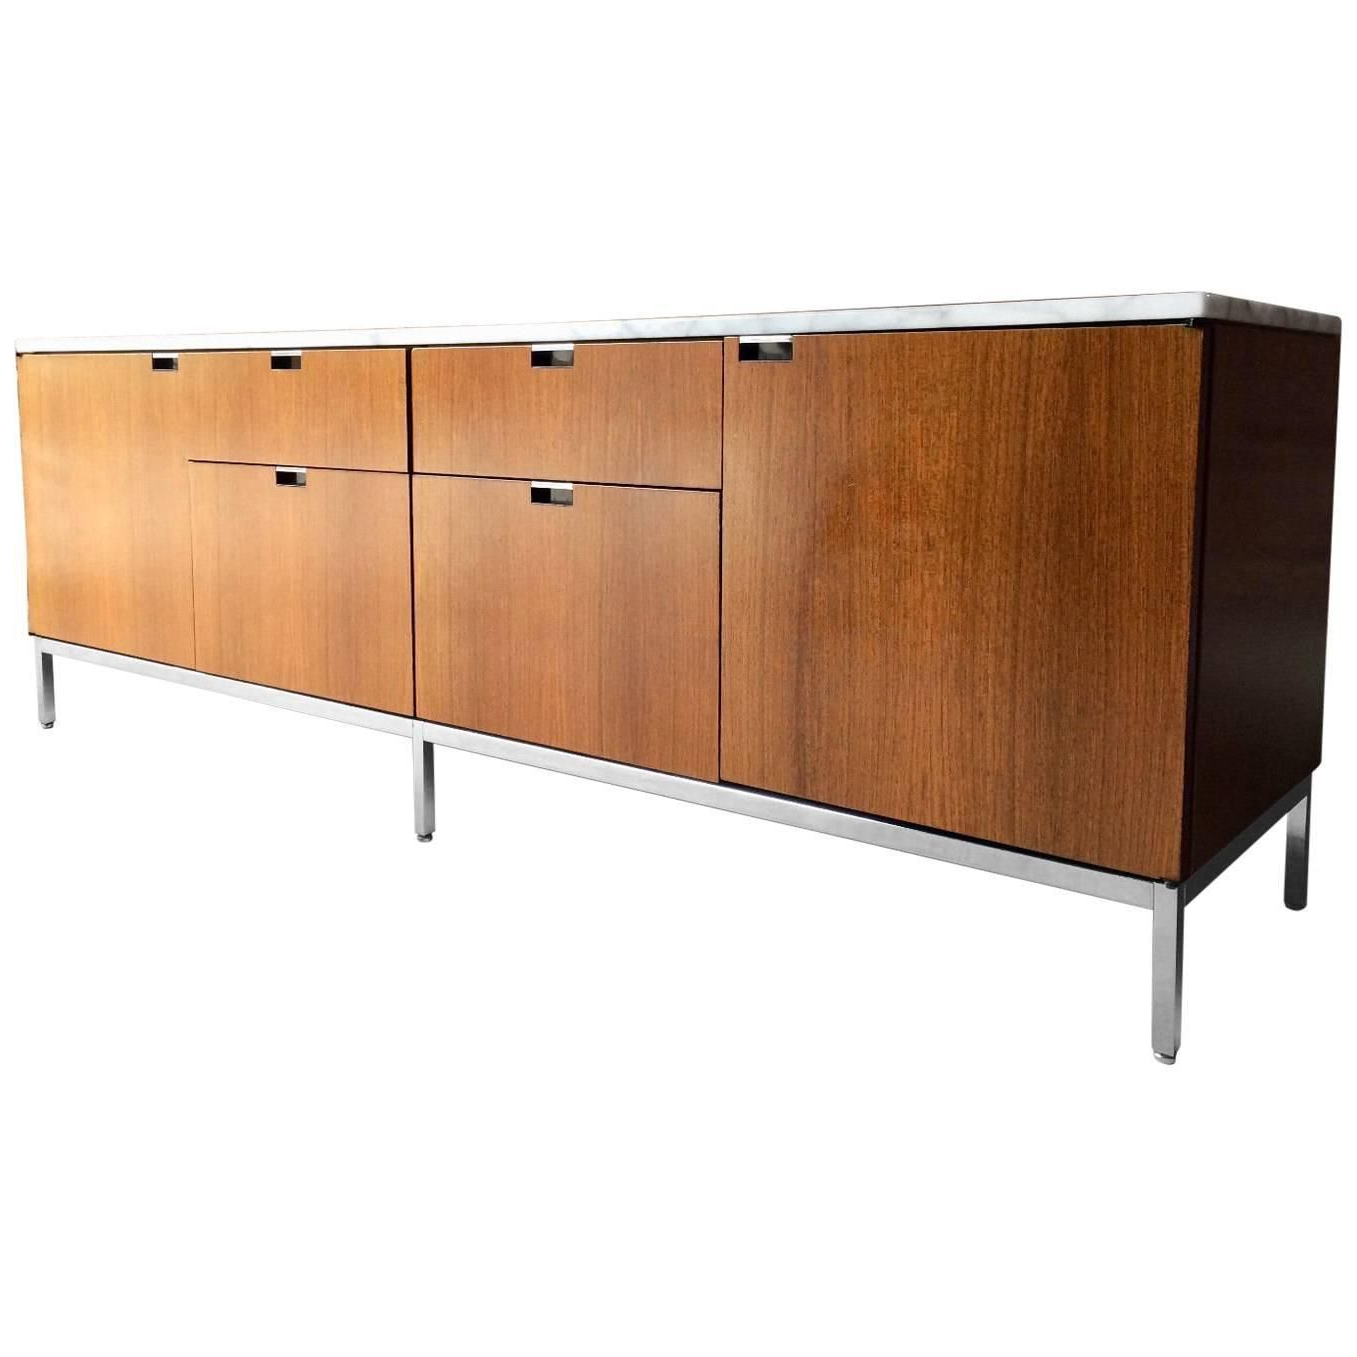 Marble Topped Light Walnut Credenza Or Sideboardflorence Intended For Line Geo Credenzas (View 13 of 20)